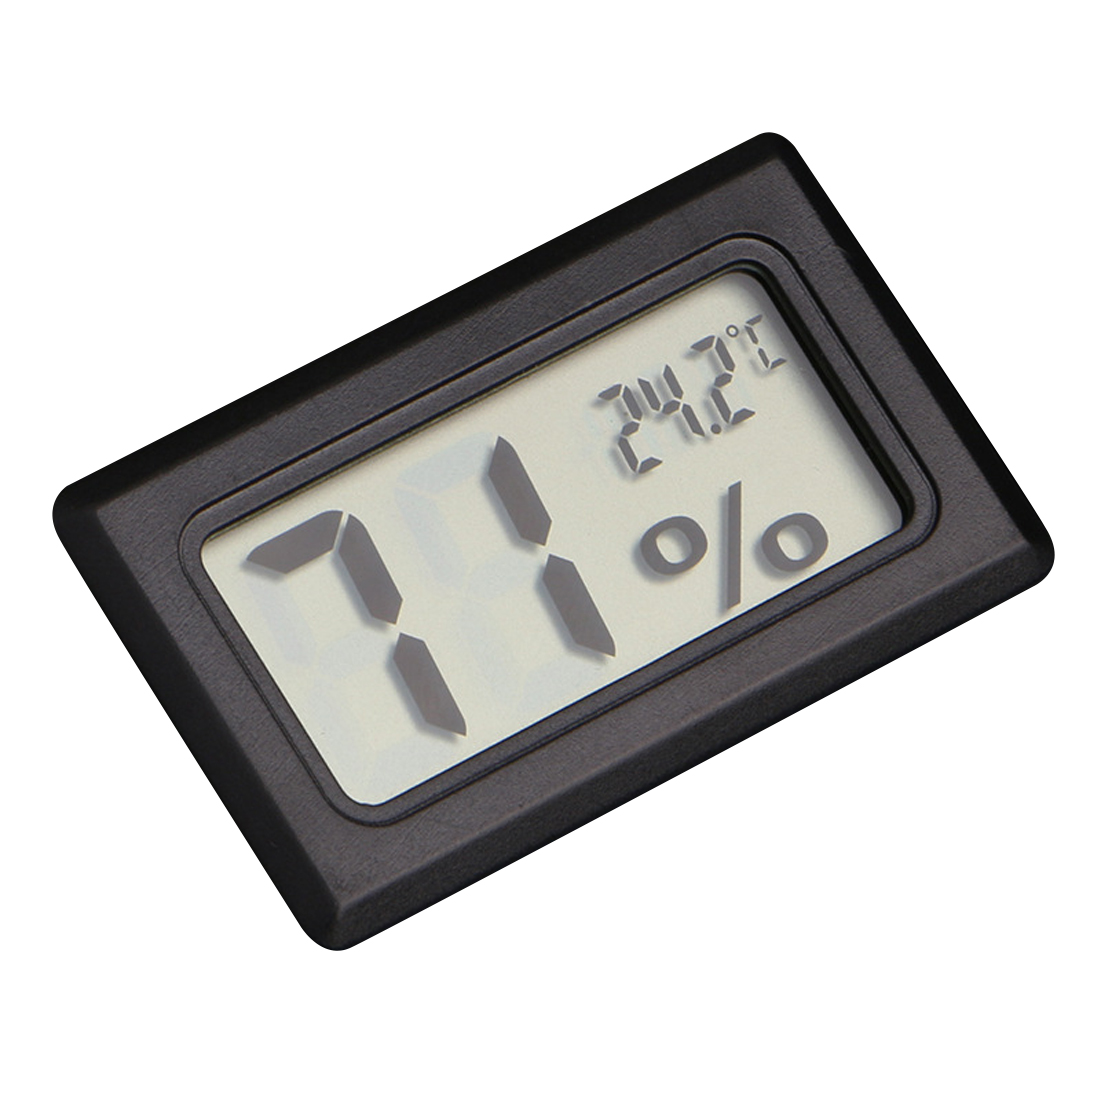 Temperature Sensor 1 PC Mini LCD Digital Thermometer Hygrometer Temperature Humidity Meter Gauge Instruments Indoor Convenient цена